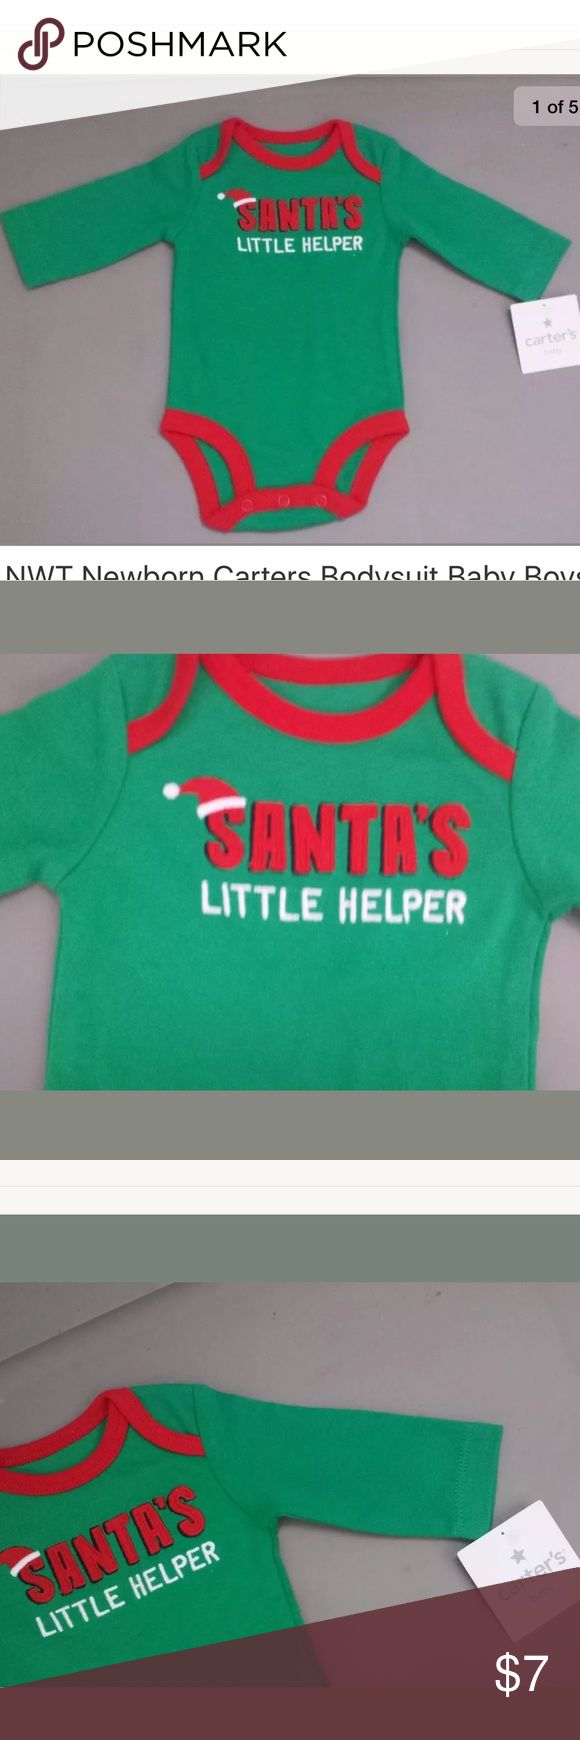 """NWT Carters Christmas Santas Little Helper Green NWT Newborn Carters Bodysuit Baby Boys Christmas Santas Little Helper Green   Expandable shoulders for easy over-the-head dressing Detailed with """"Santa's Little Helper"""" applique embroidery Snaps on reinforced panel help make diaper changes fast and easy Matches lots of bottoms for easy outfits 100% cotton Imported Machine washable  Smoke and pets free home Carter's One Pieces Bodysuits"""